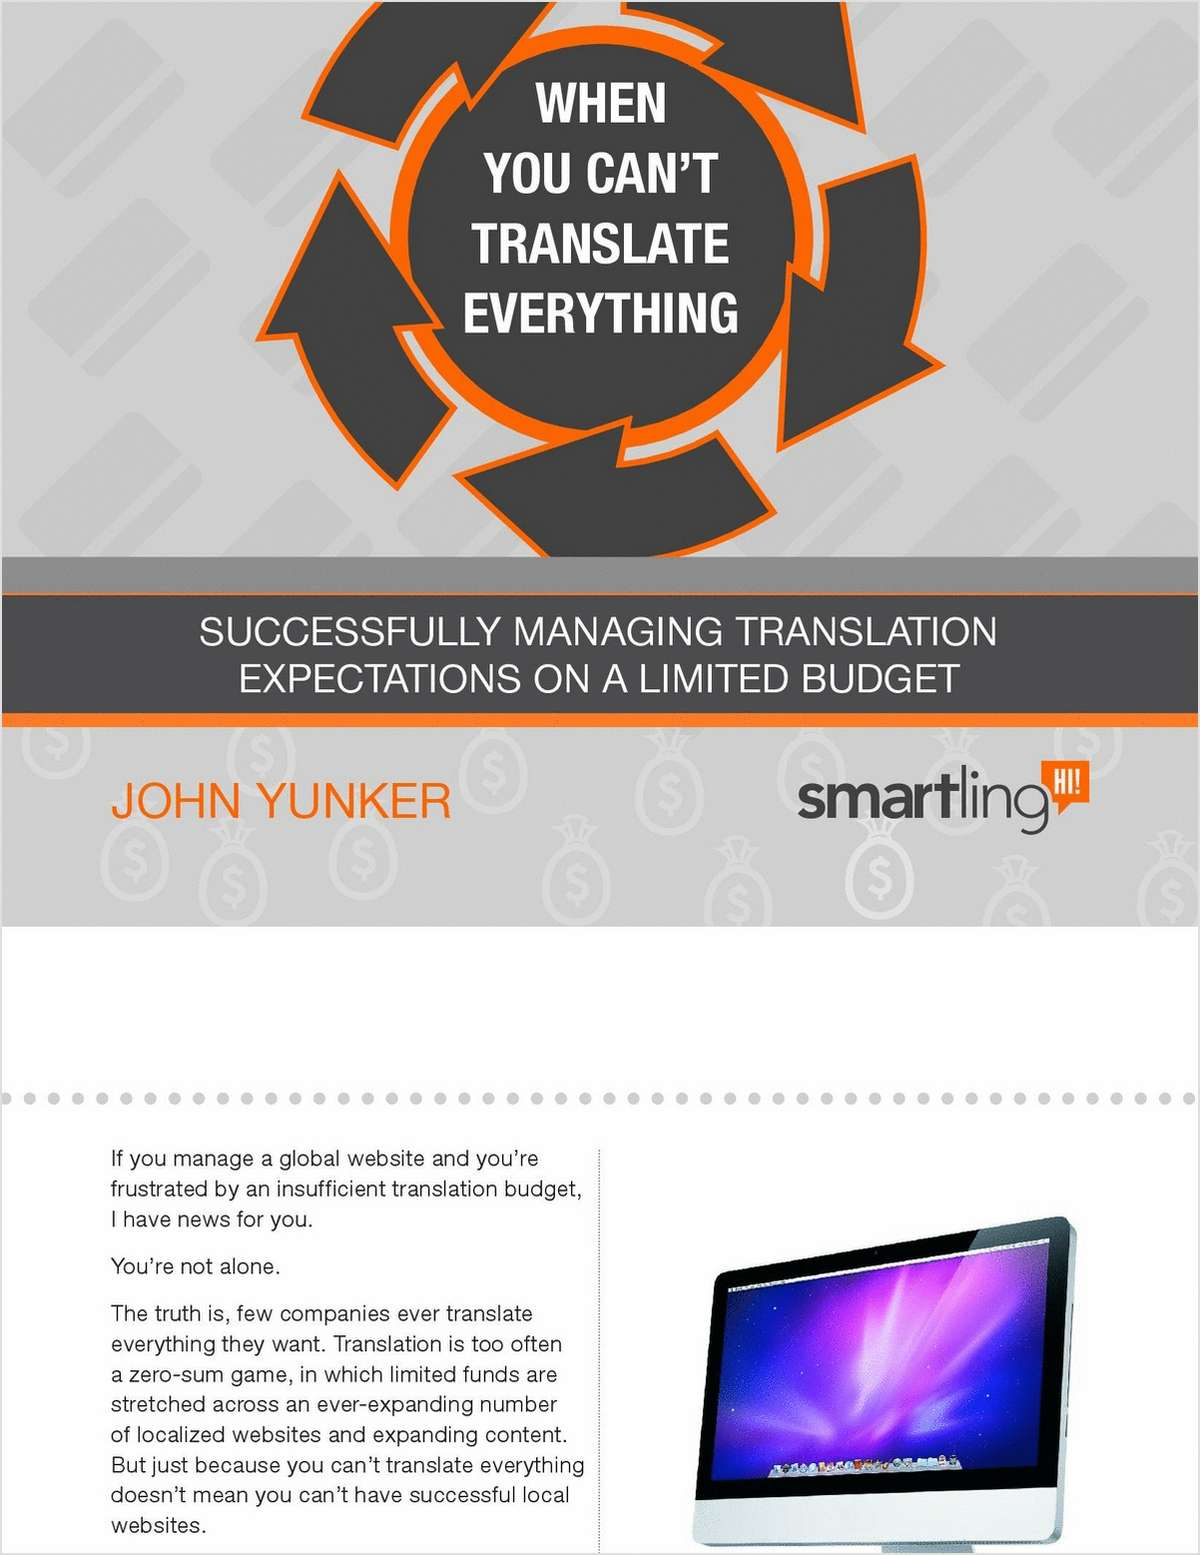 When You Can't Translate Everything: Managing Translation Expectations